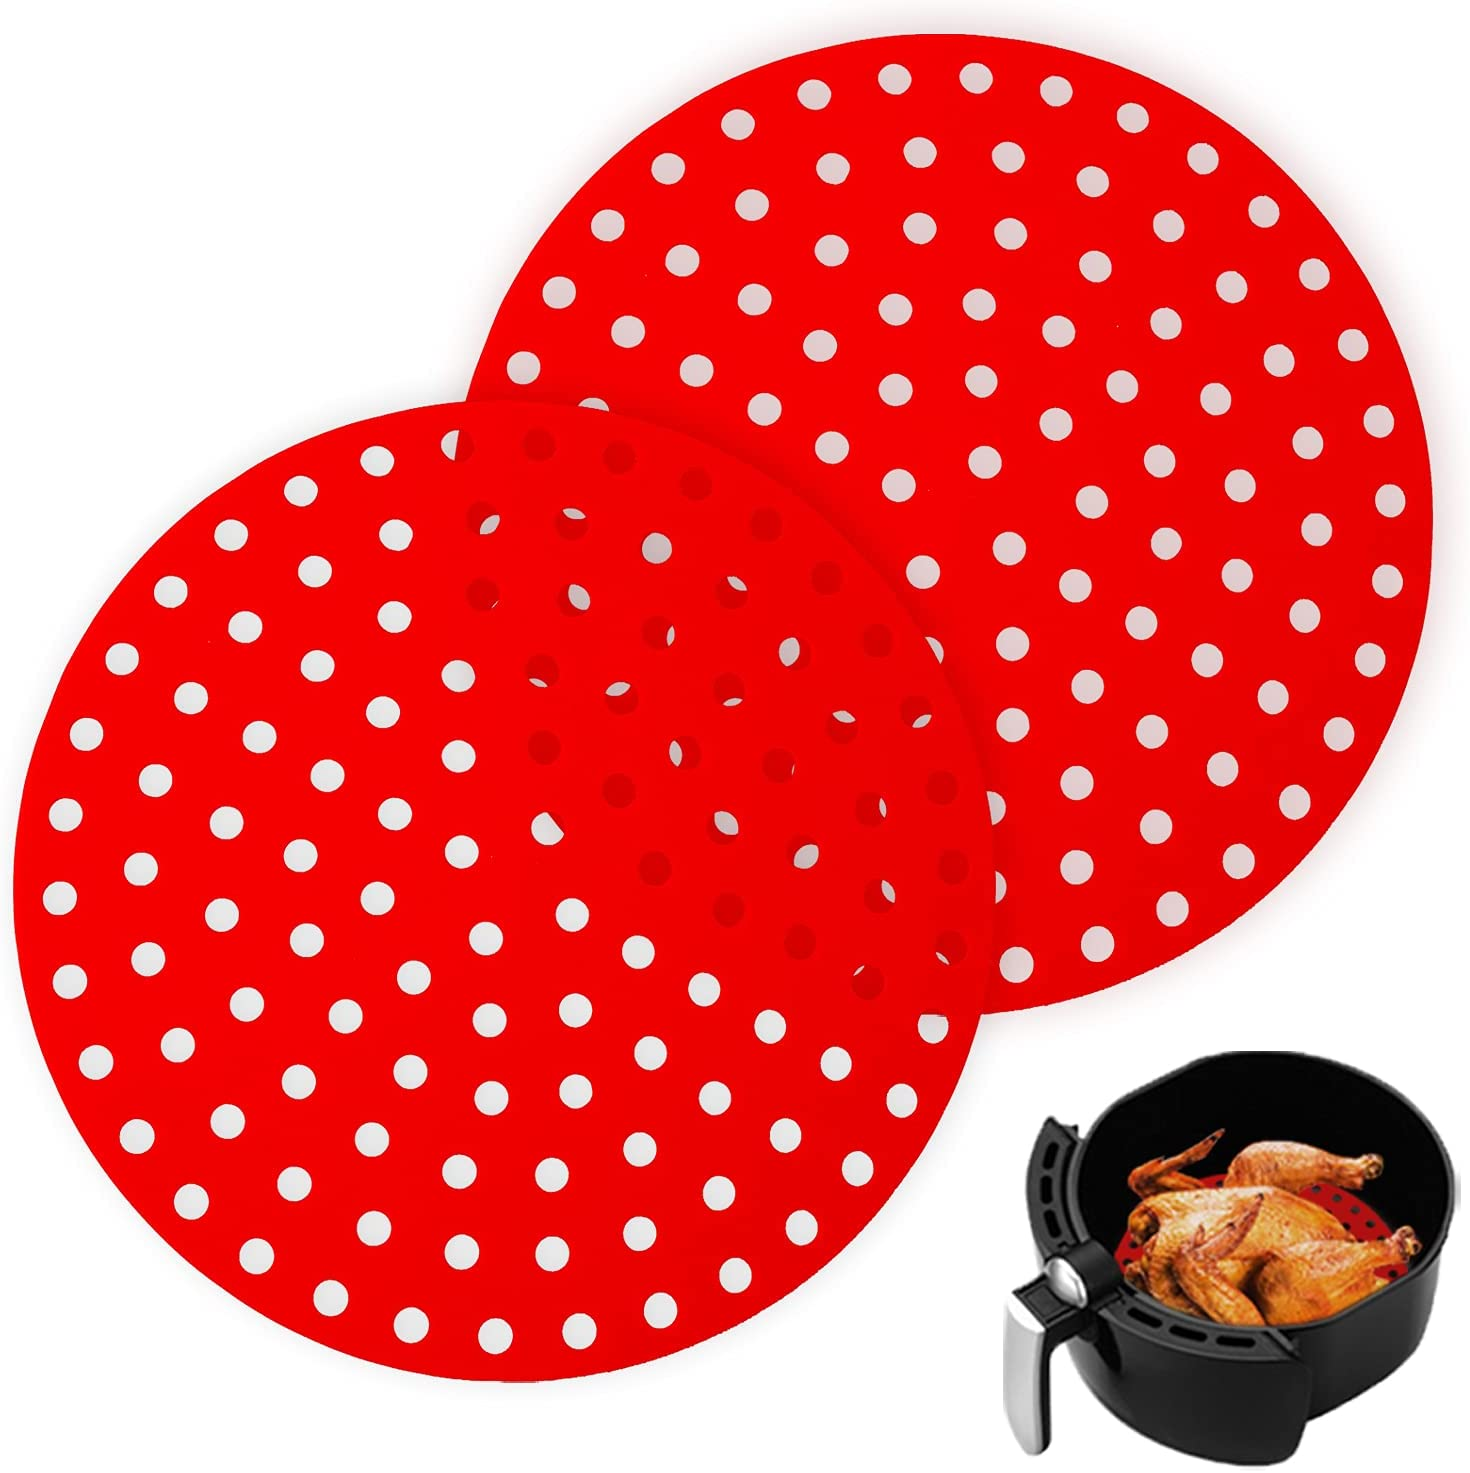 Air Fryer Liners, Set of Two,9-Inch Air Fryer Liners Round, Flexible Air Fryer Accessories, Red Reusable Non-Stick Silicone Air Fryer Mats, Easy to Clean, Perforated Design for Maximum Air Flow